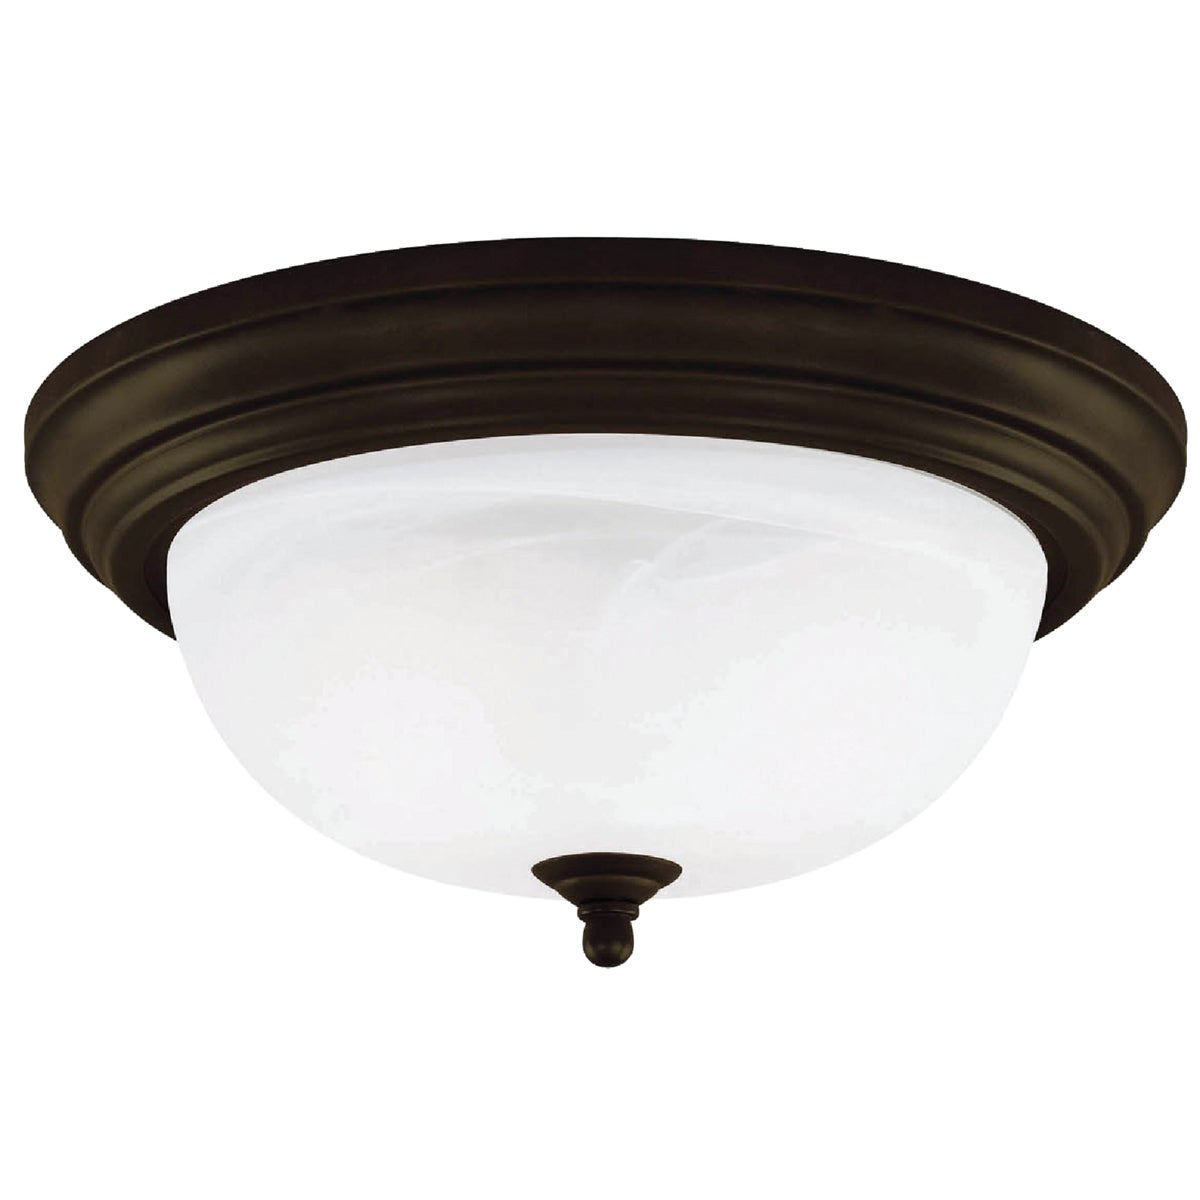 2BLB ORB CEILING FIXTURE - IFM411ORB by Canarm Gs